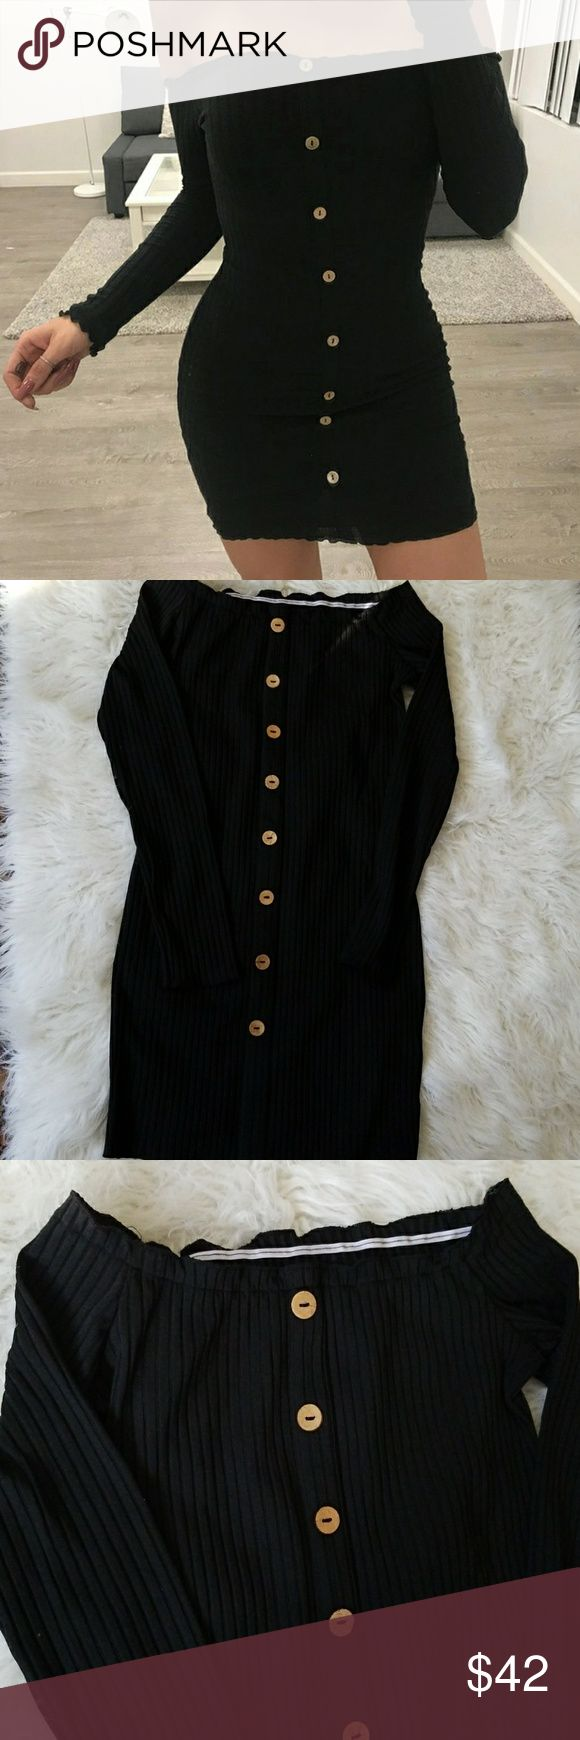 Button Down Black Dress Brand new without tags. Size medium. Fits an 8 best.  Fabric is stretchy. Buttons are not real (meaning they dont unbutton lol)   Offers welcome! Dresses Mini